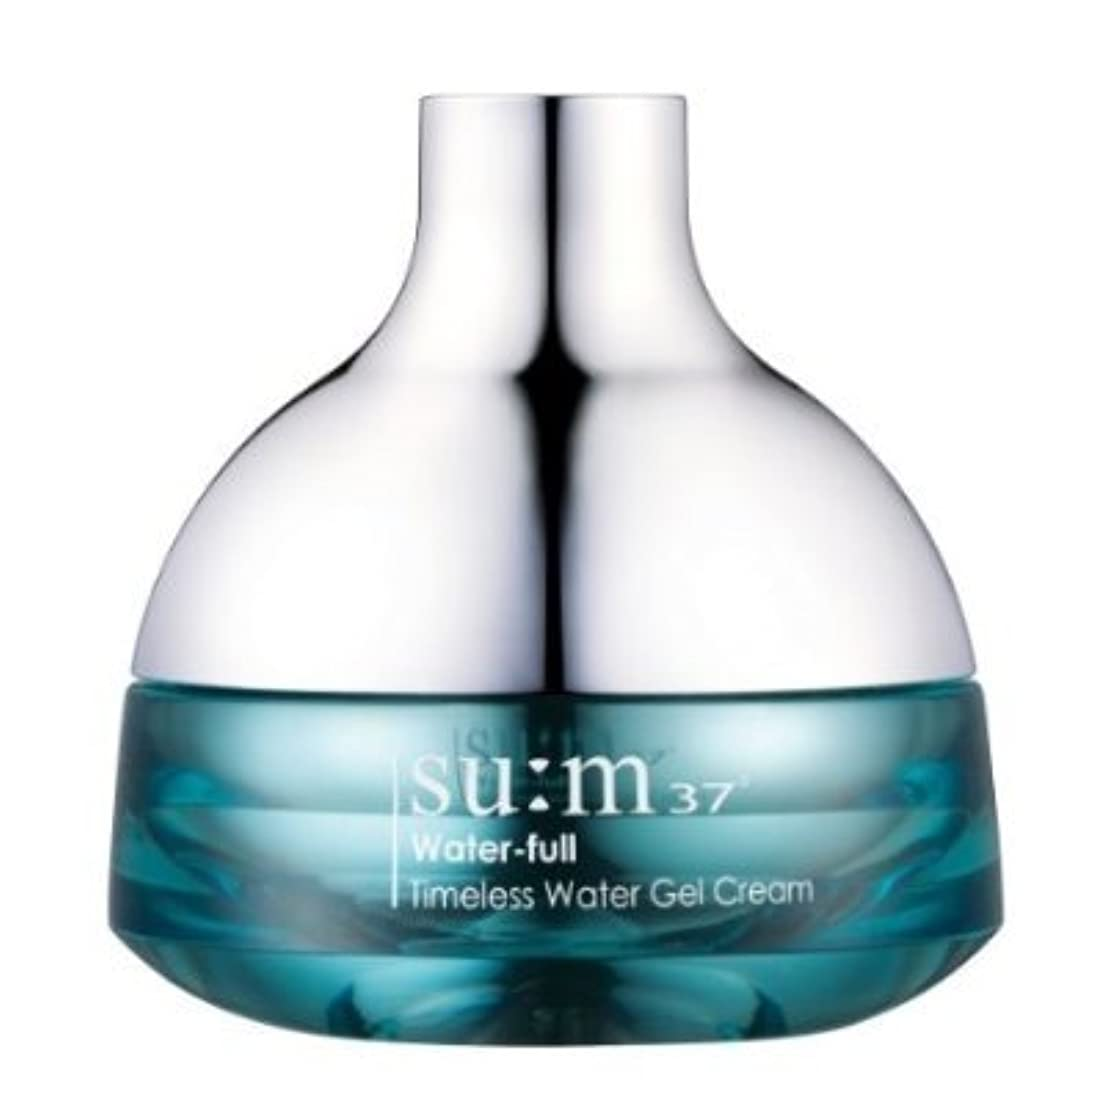 繰り返しおとうさんエッセイKOREAN COSMETICS, LG Household & Health Care_ SUM37, Water Full Timeless Water Gel Cream 50ml (Moisturizing, refreshing...